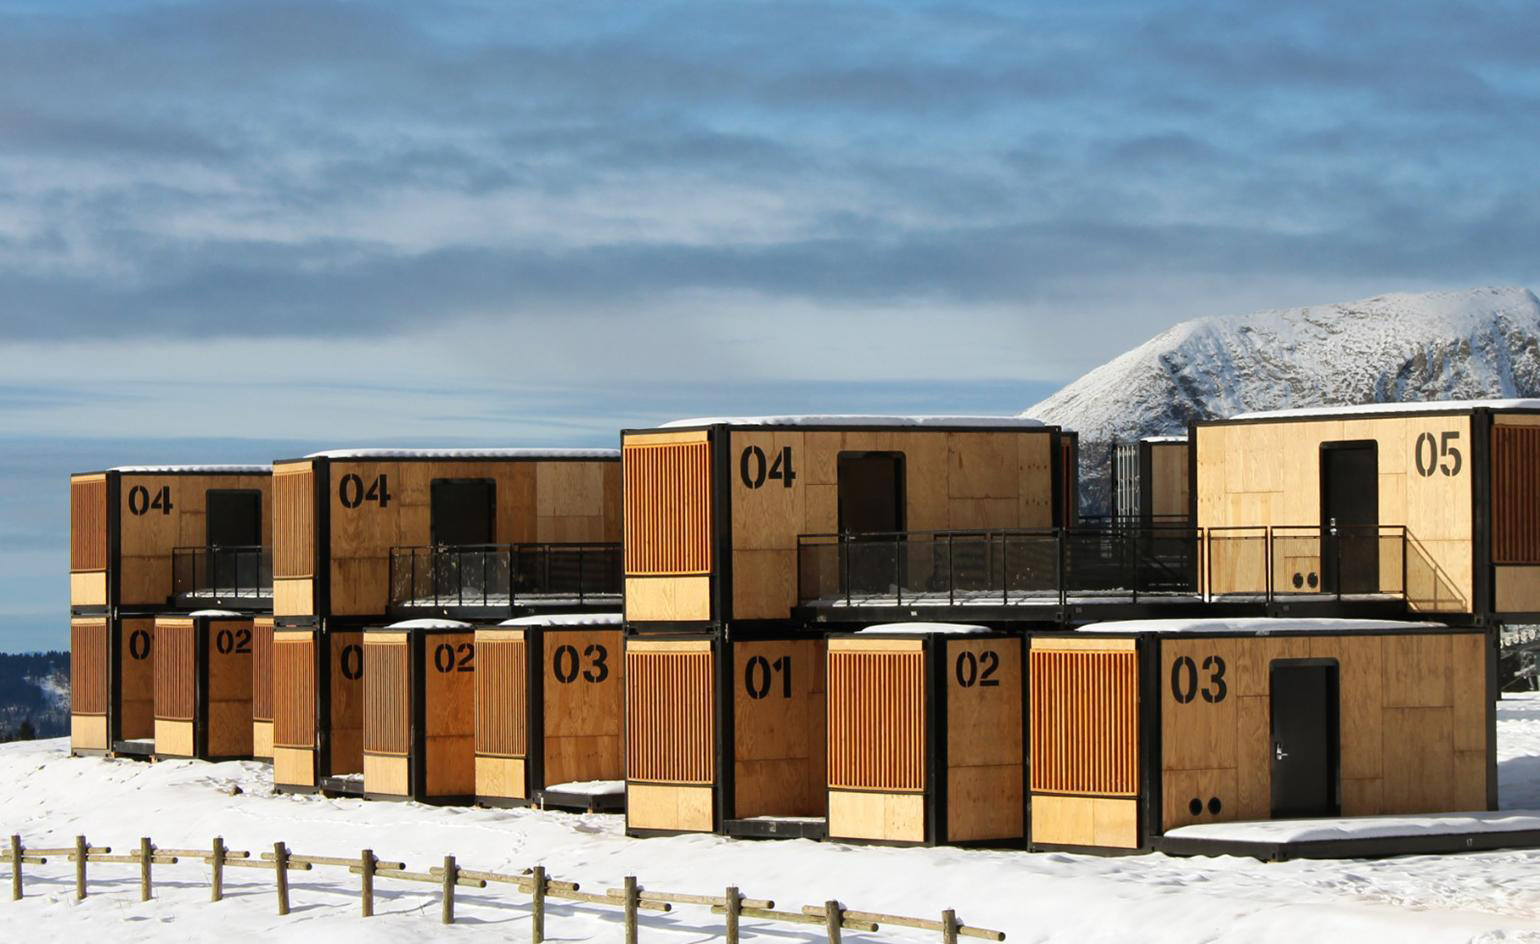 Ora-ïto designs nomadic hotel that can be installed in half a day